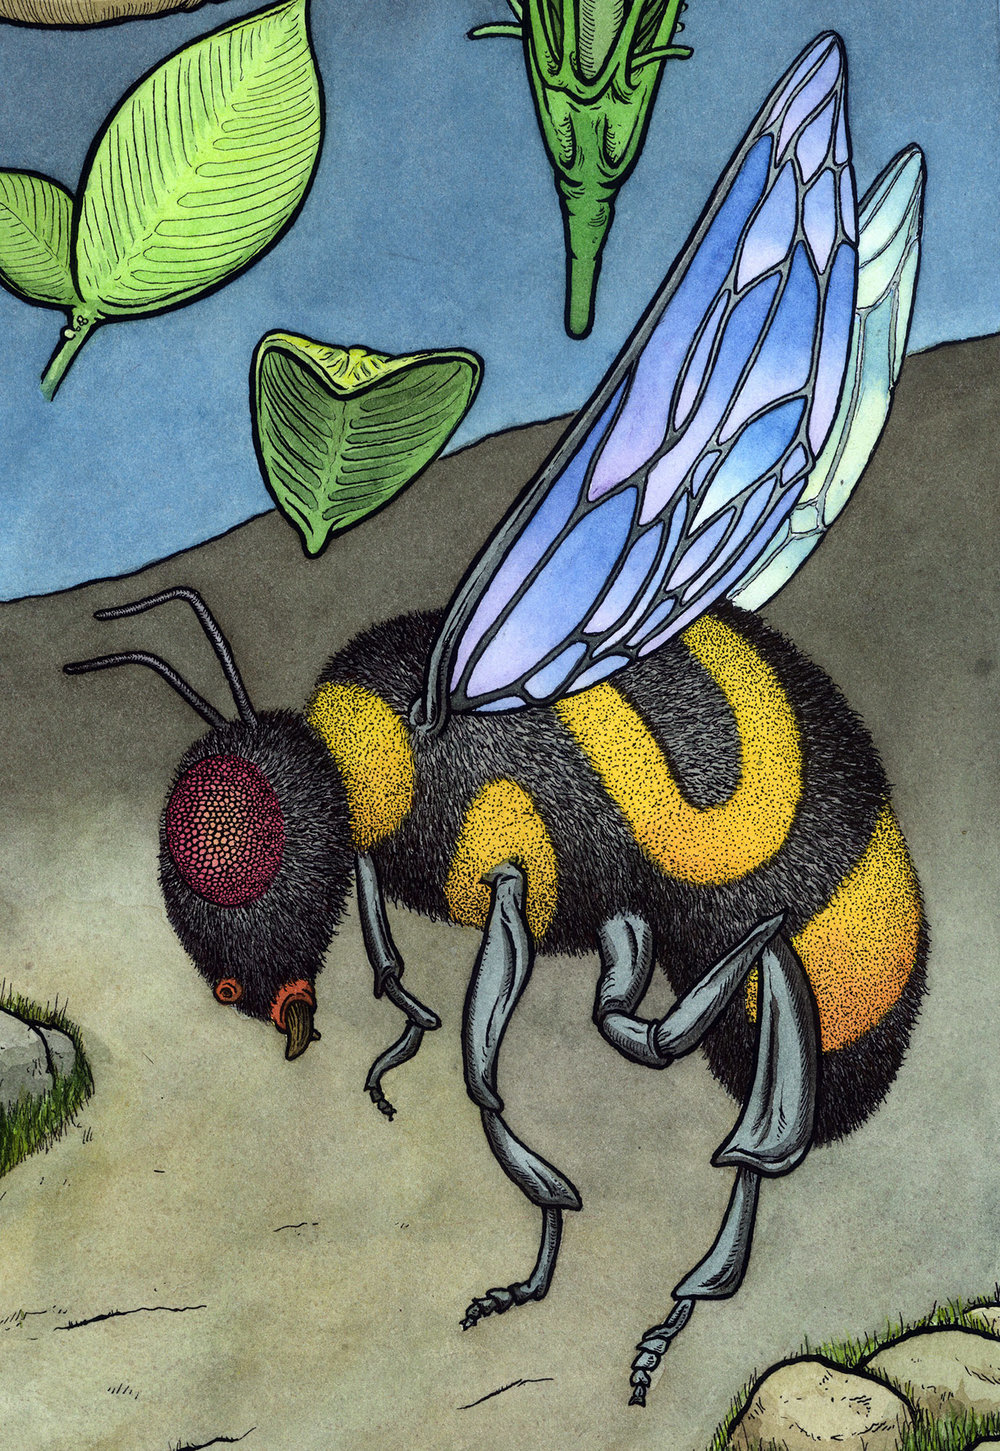 Beetail. Haha, get it? More bees, more flowers. Or more drawings from the Isle of Shoals.